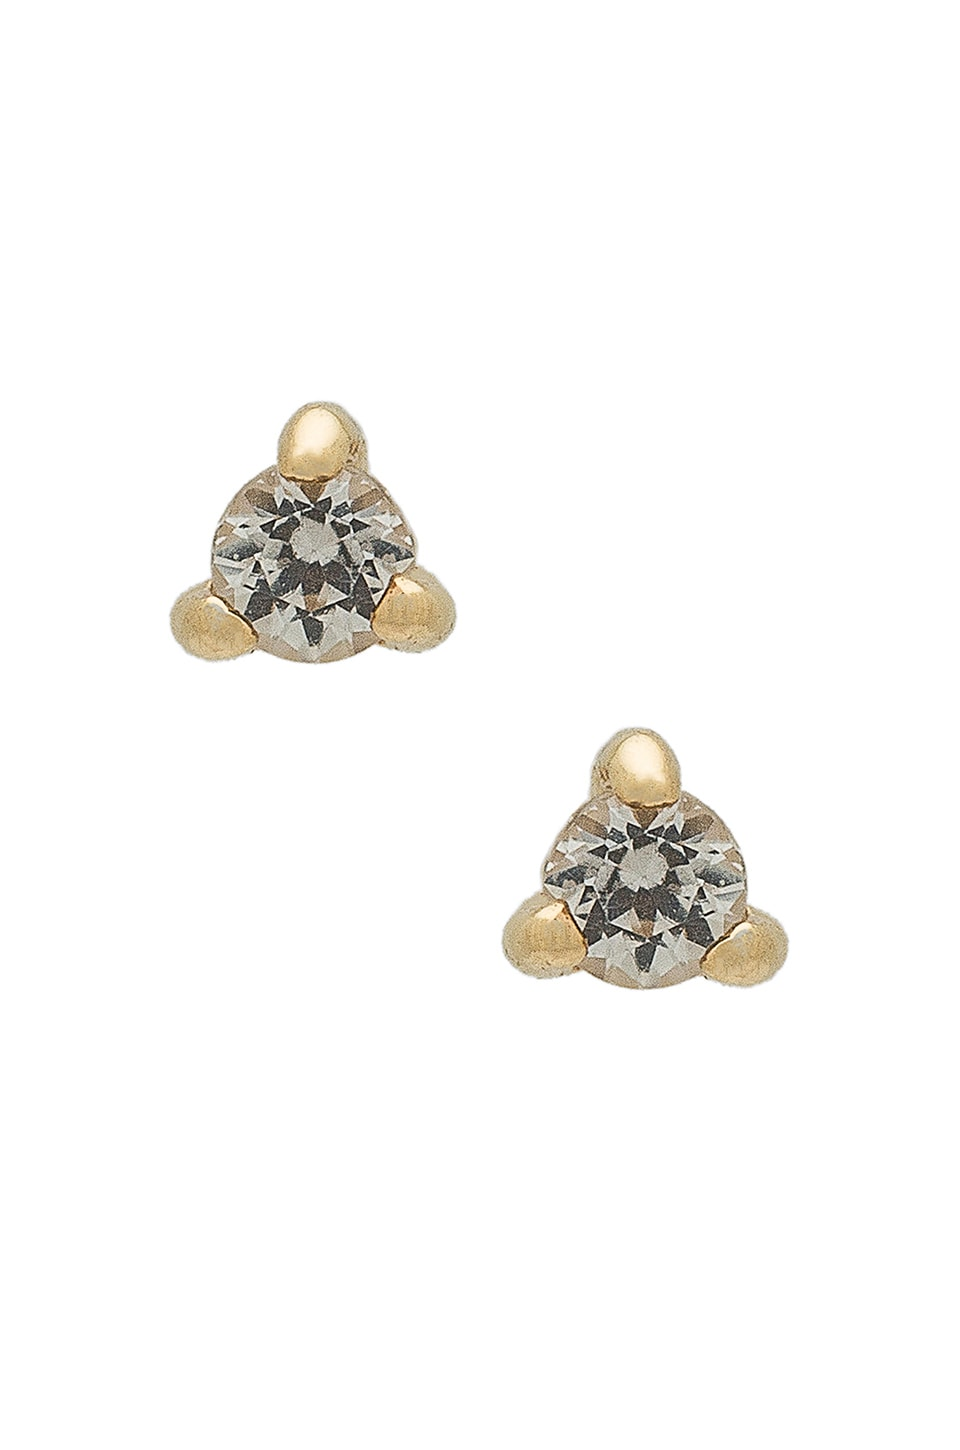 APRES JEWELRY Petite Stone Studs in Metallic Gold